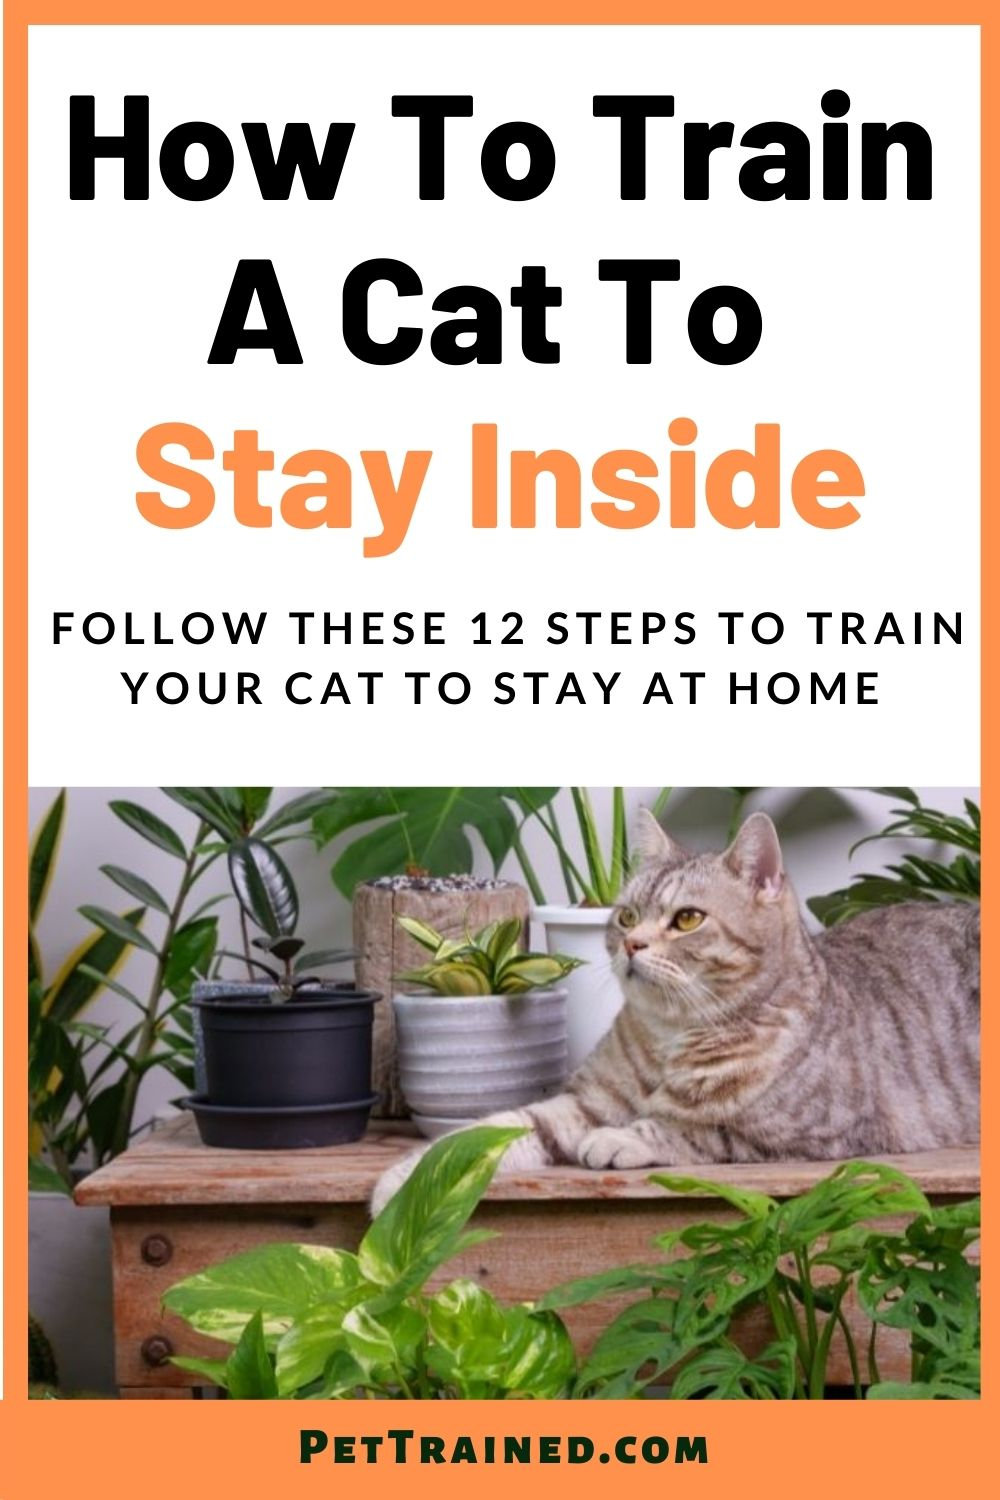 transition outdoor to indoor cat